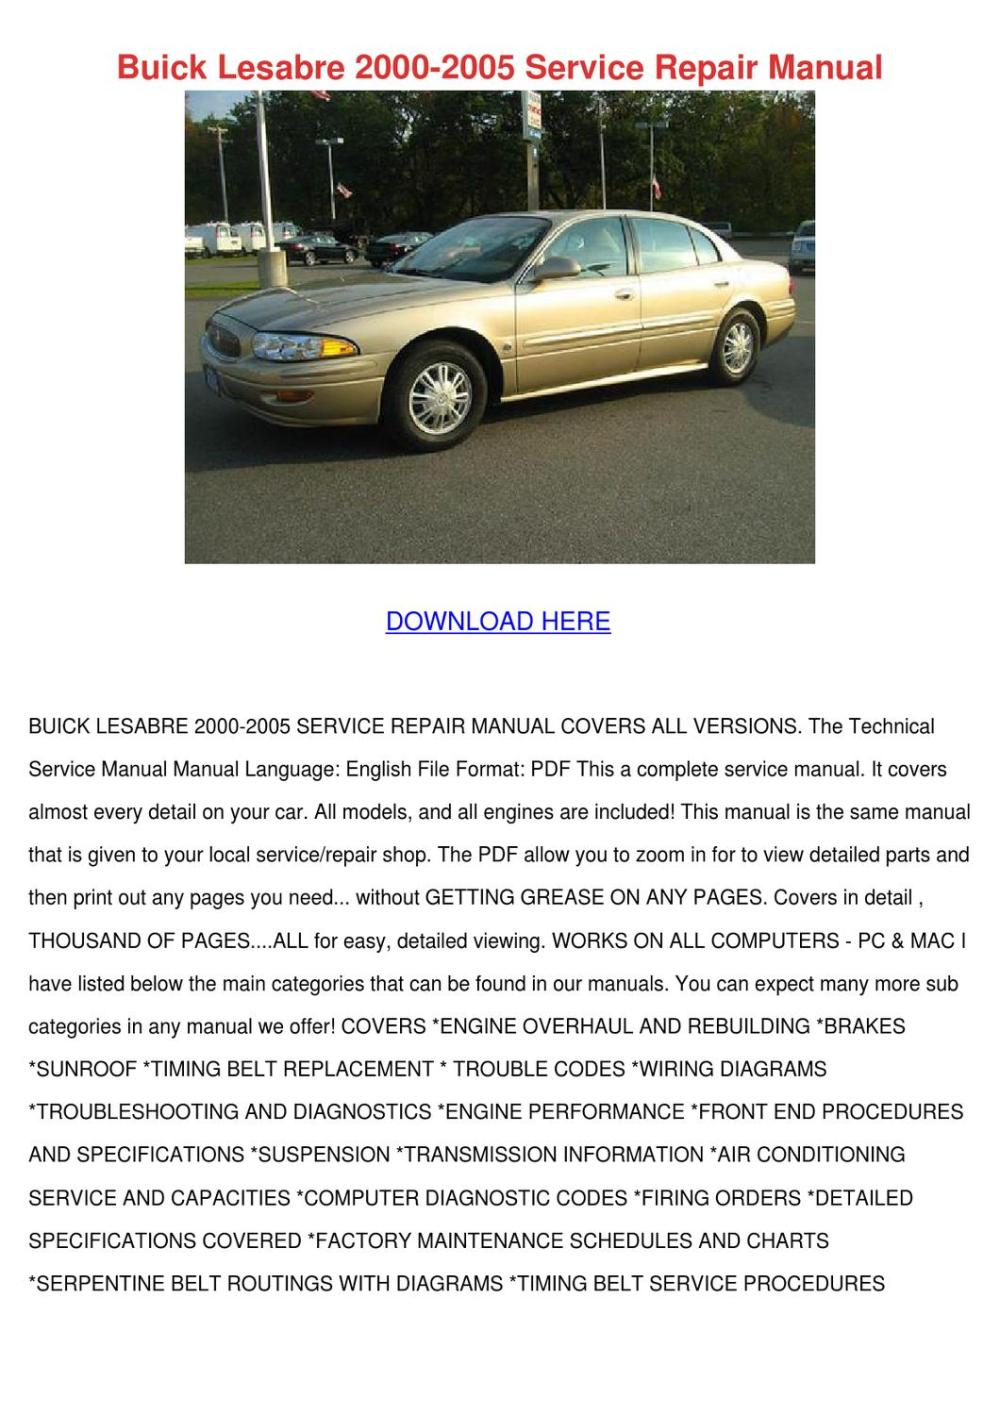 medium resolution of 1998 buick regal gs service manual